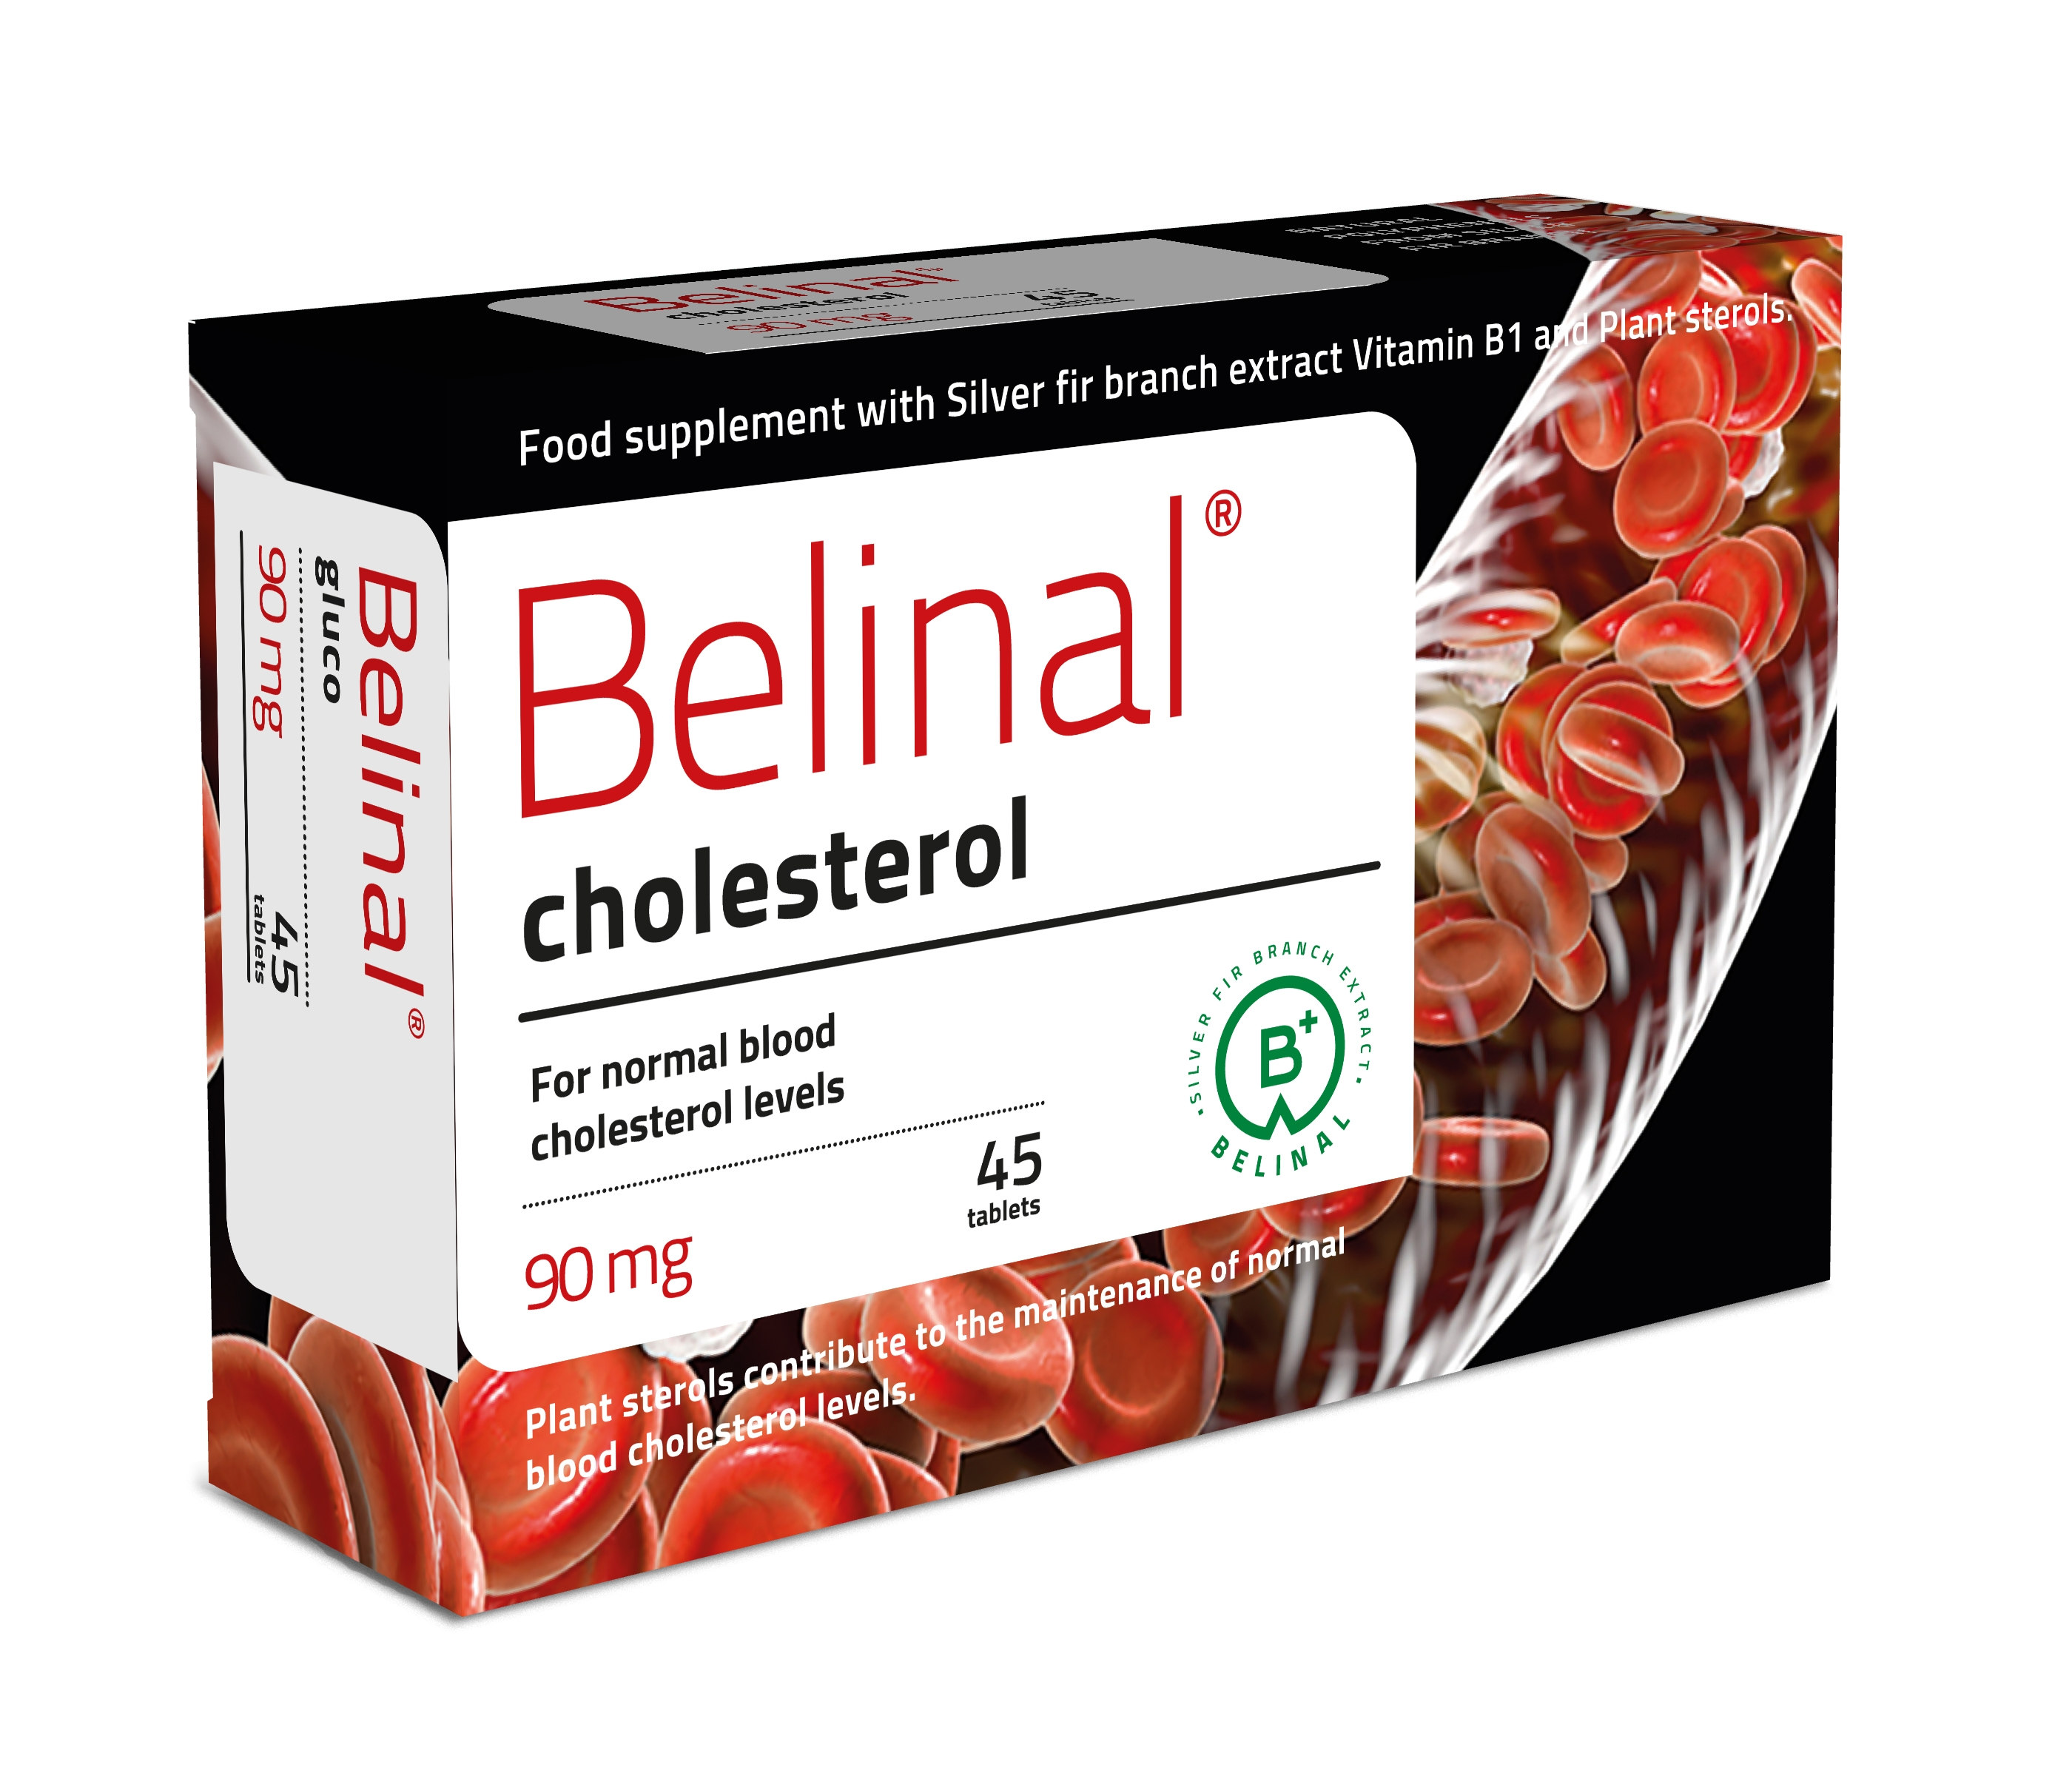 belinal cholesterol - silver fir - normal blood cholesterol levels - bad cholesterol - normal blood flow - heart and blood vessel protection